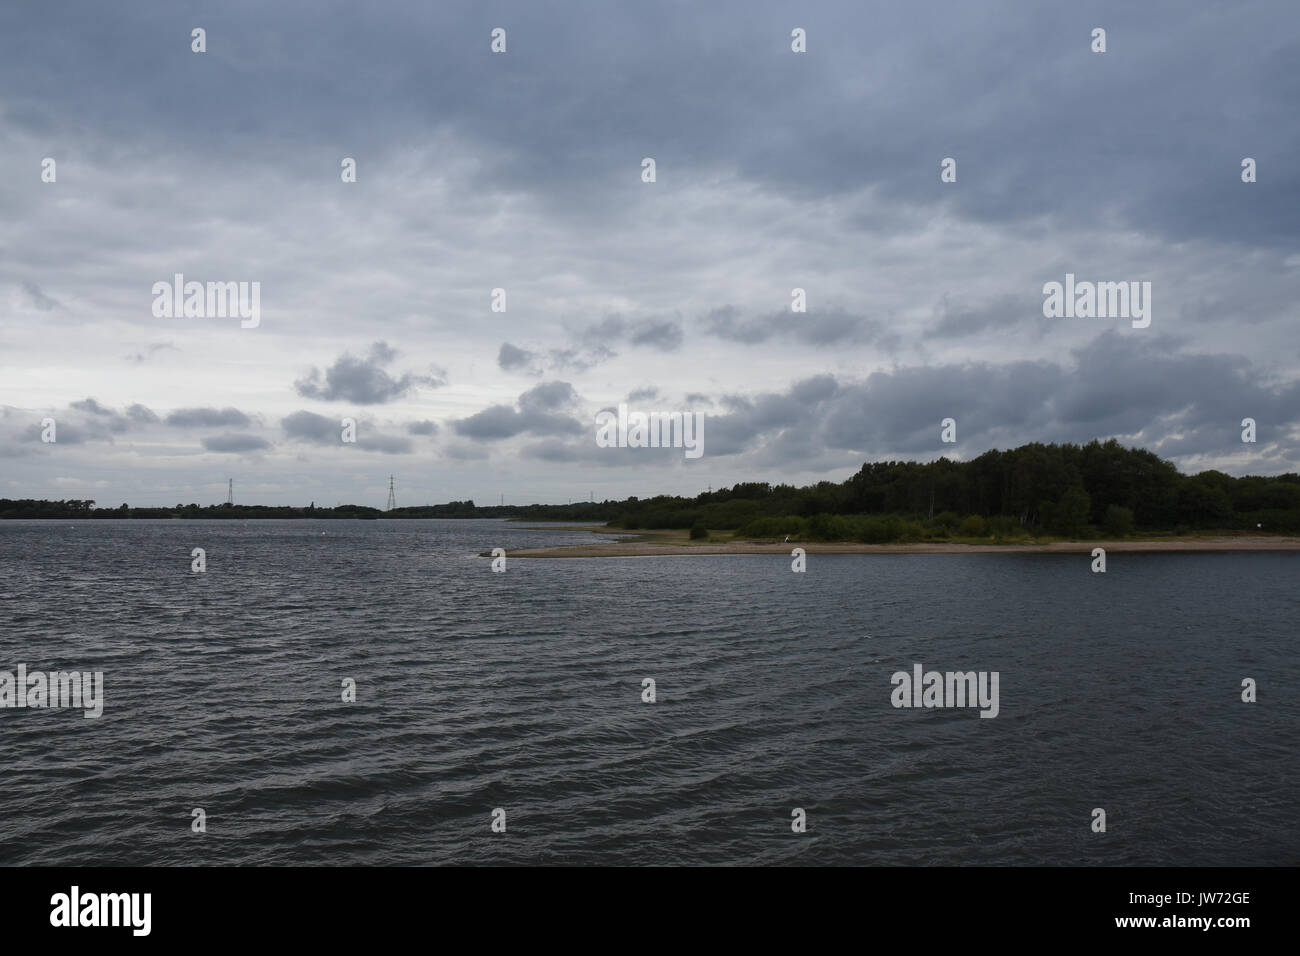 A stormy looking morning across Chasewater Country Park, Stafordshire, UK with cloud building and the threat of rain. Typical for a Great British summer holiday - Stock Image